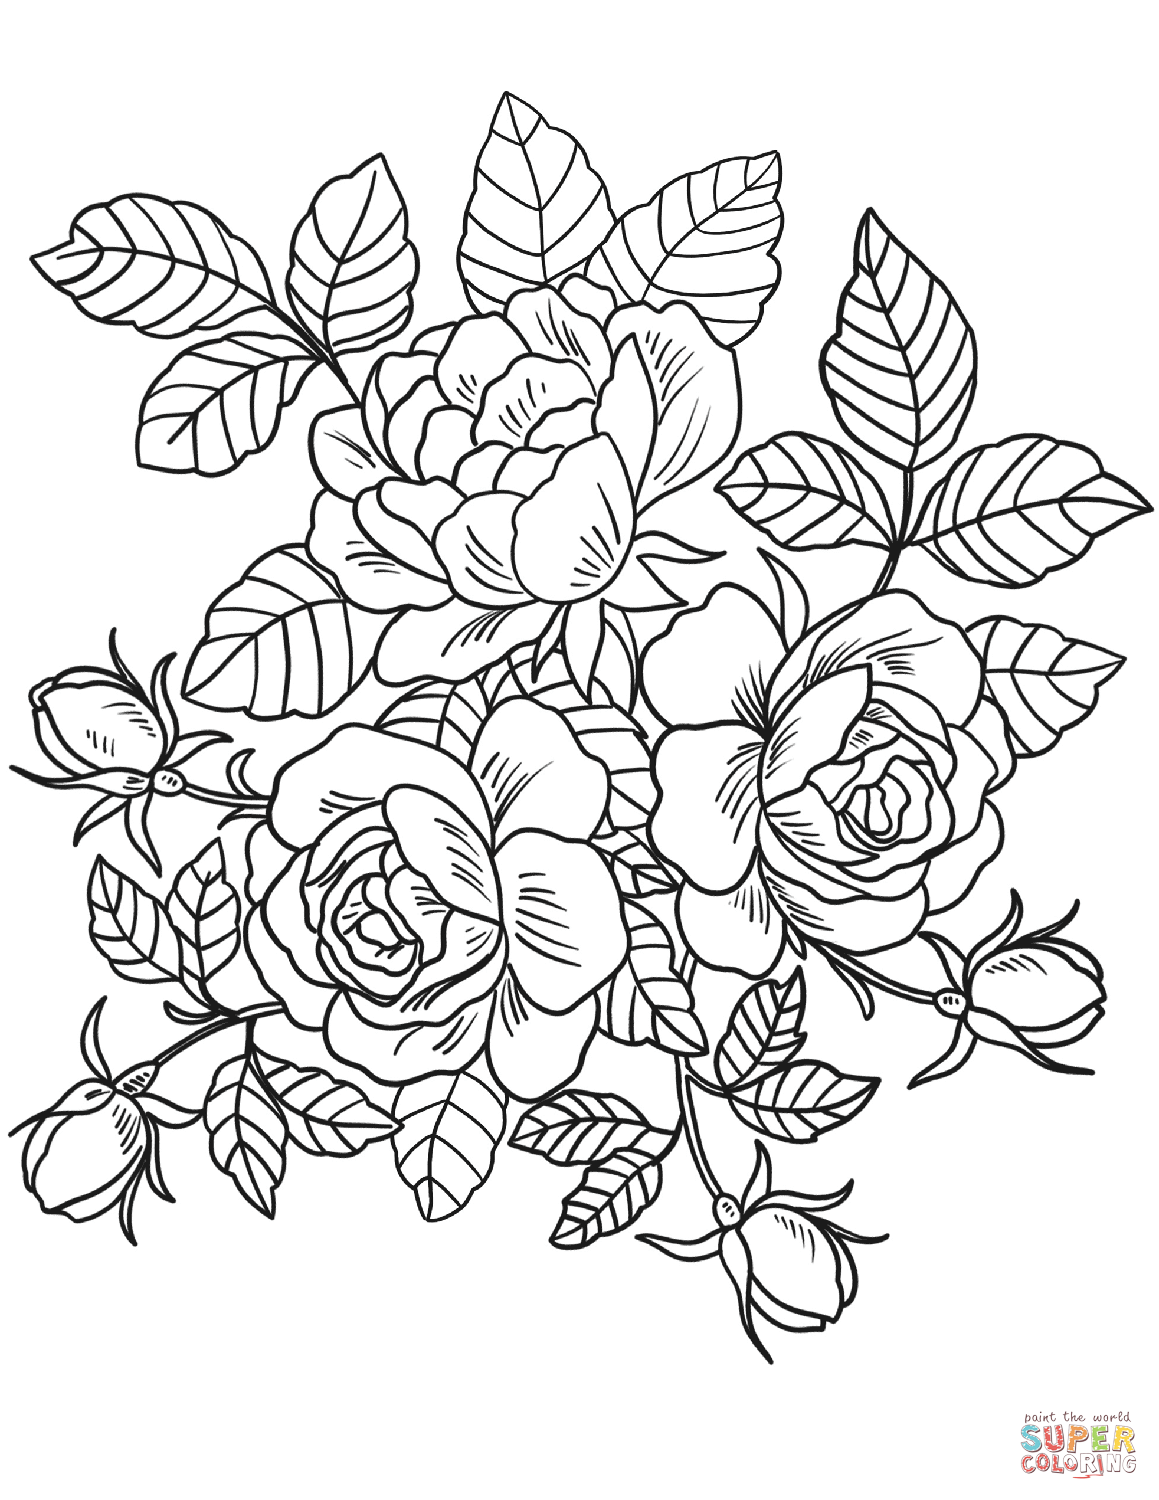 roses flowers coloring page free printable coloring pages coloring flower coloring pages. Black Bedroom Furniture Sets. Home Design Ideas